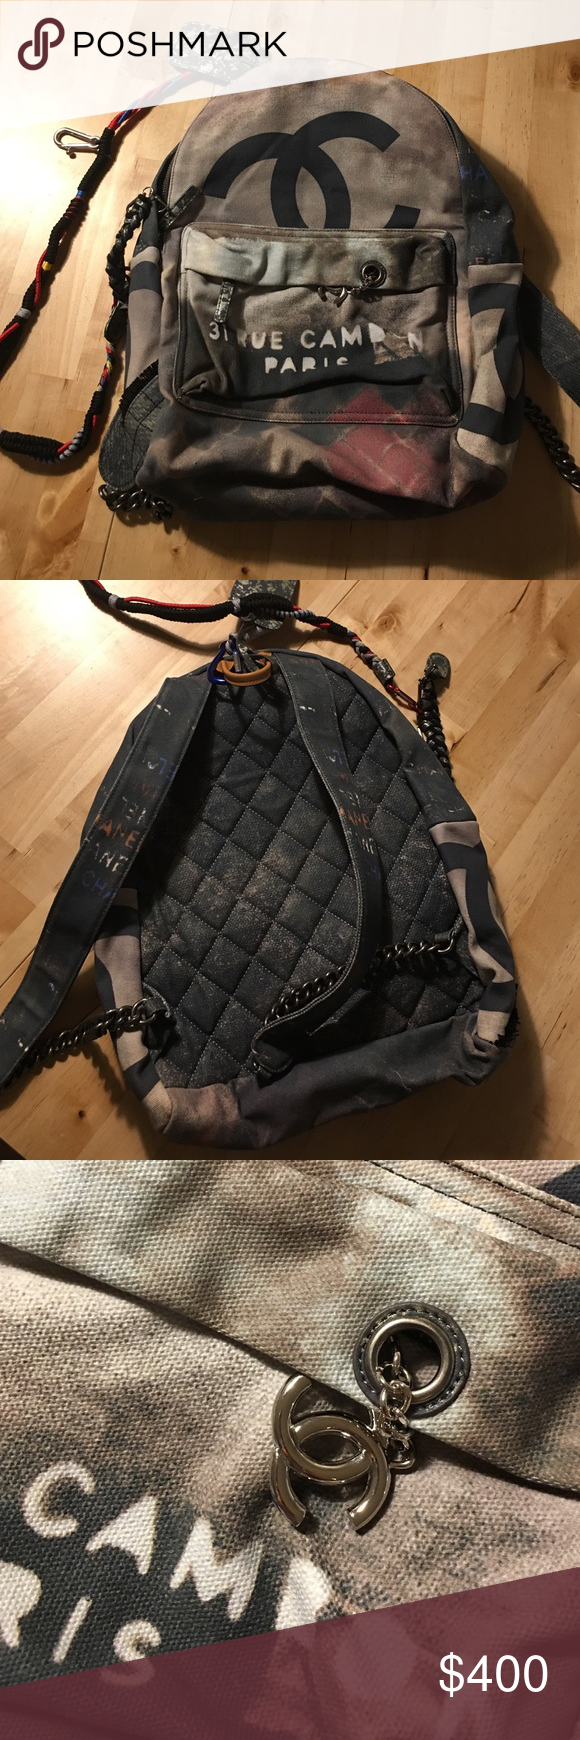 dea26bad9f21 CHANEL GRAFFITI BACKPACK Bought the fake large bag, is in perfect  condition, NEVER WORN!! Color is black canvas and includes dust bag CHANEL  Bags Backpacks